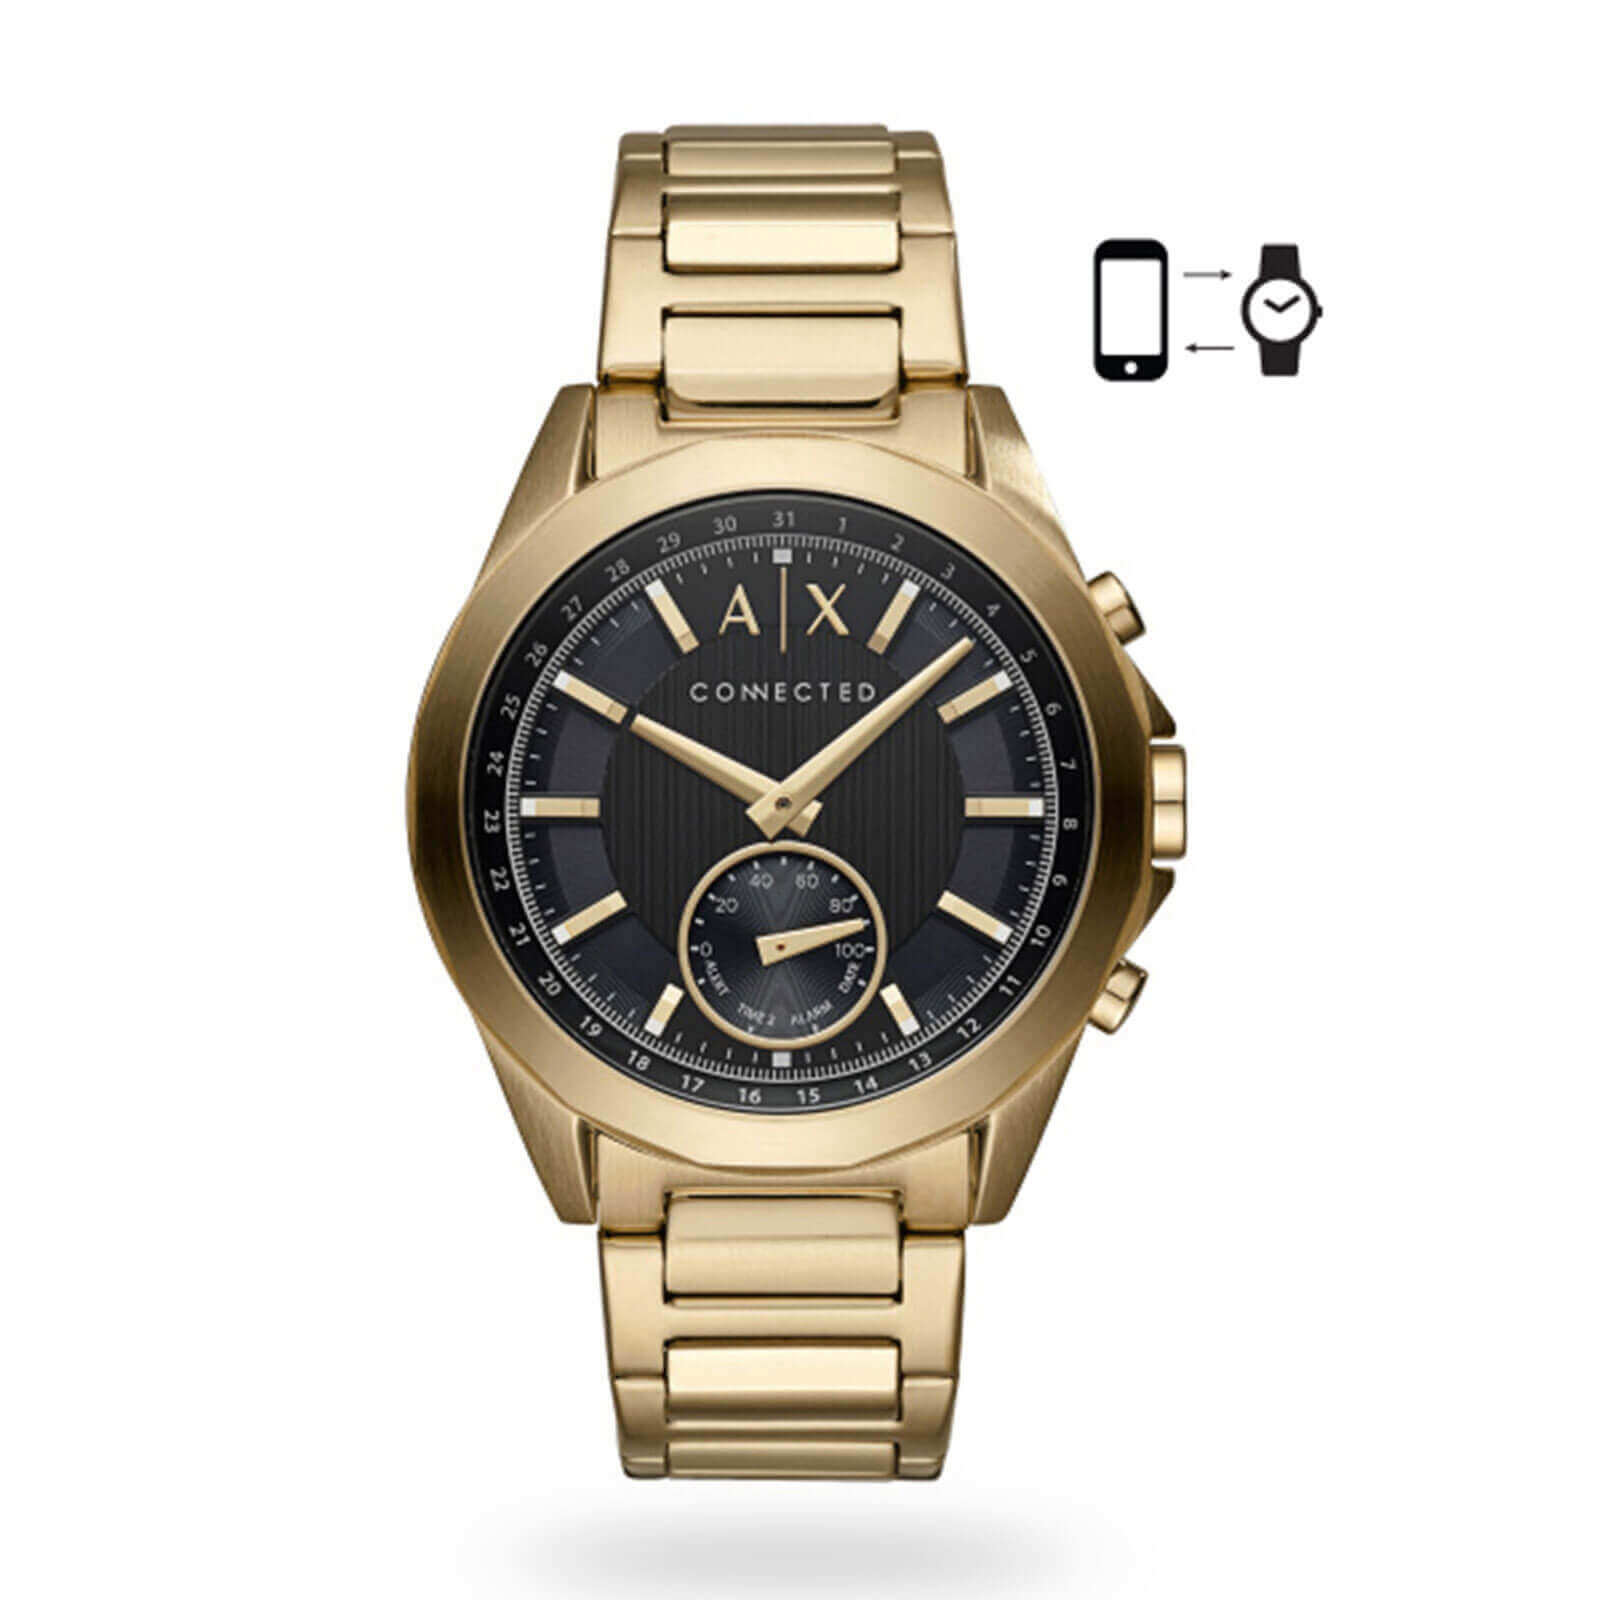 00f62c36574 Armani Exchange Connected Watch AXT1008